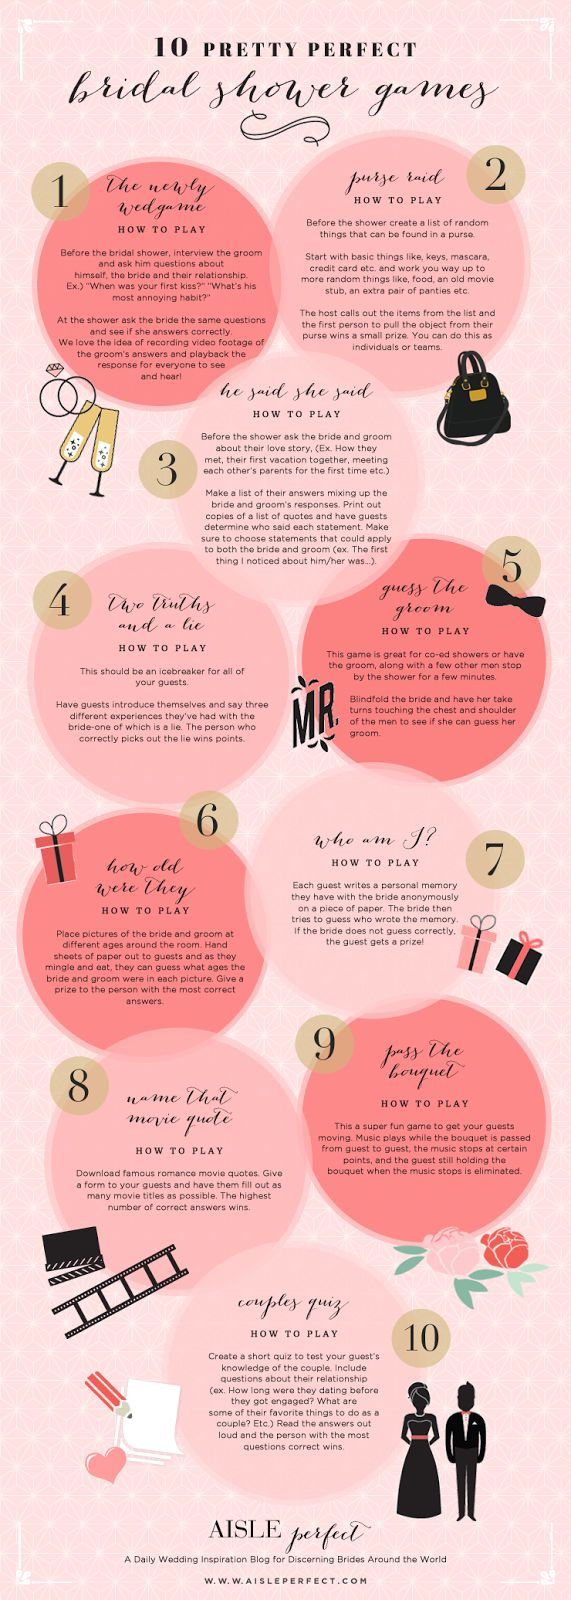 10 Bridal Shower Games